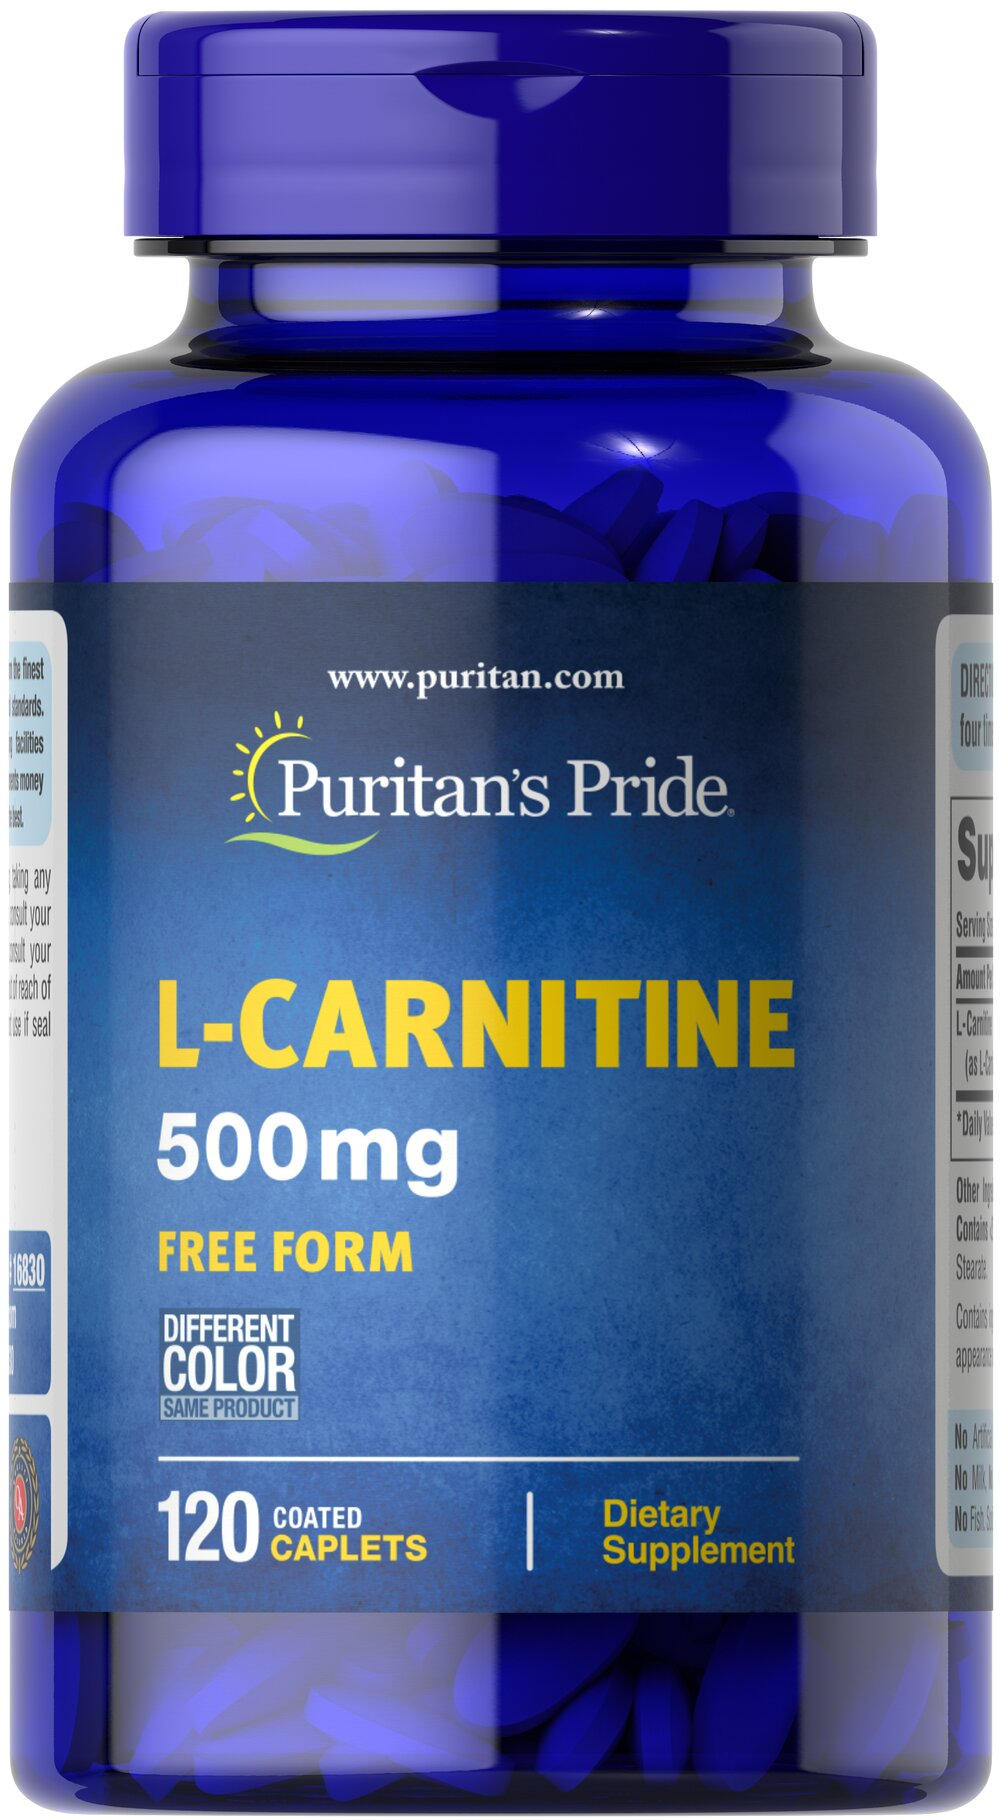 L-Carnitine 500 mg  120 Caplets 500 mg $16.99